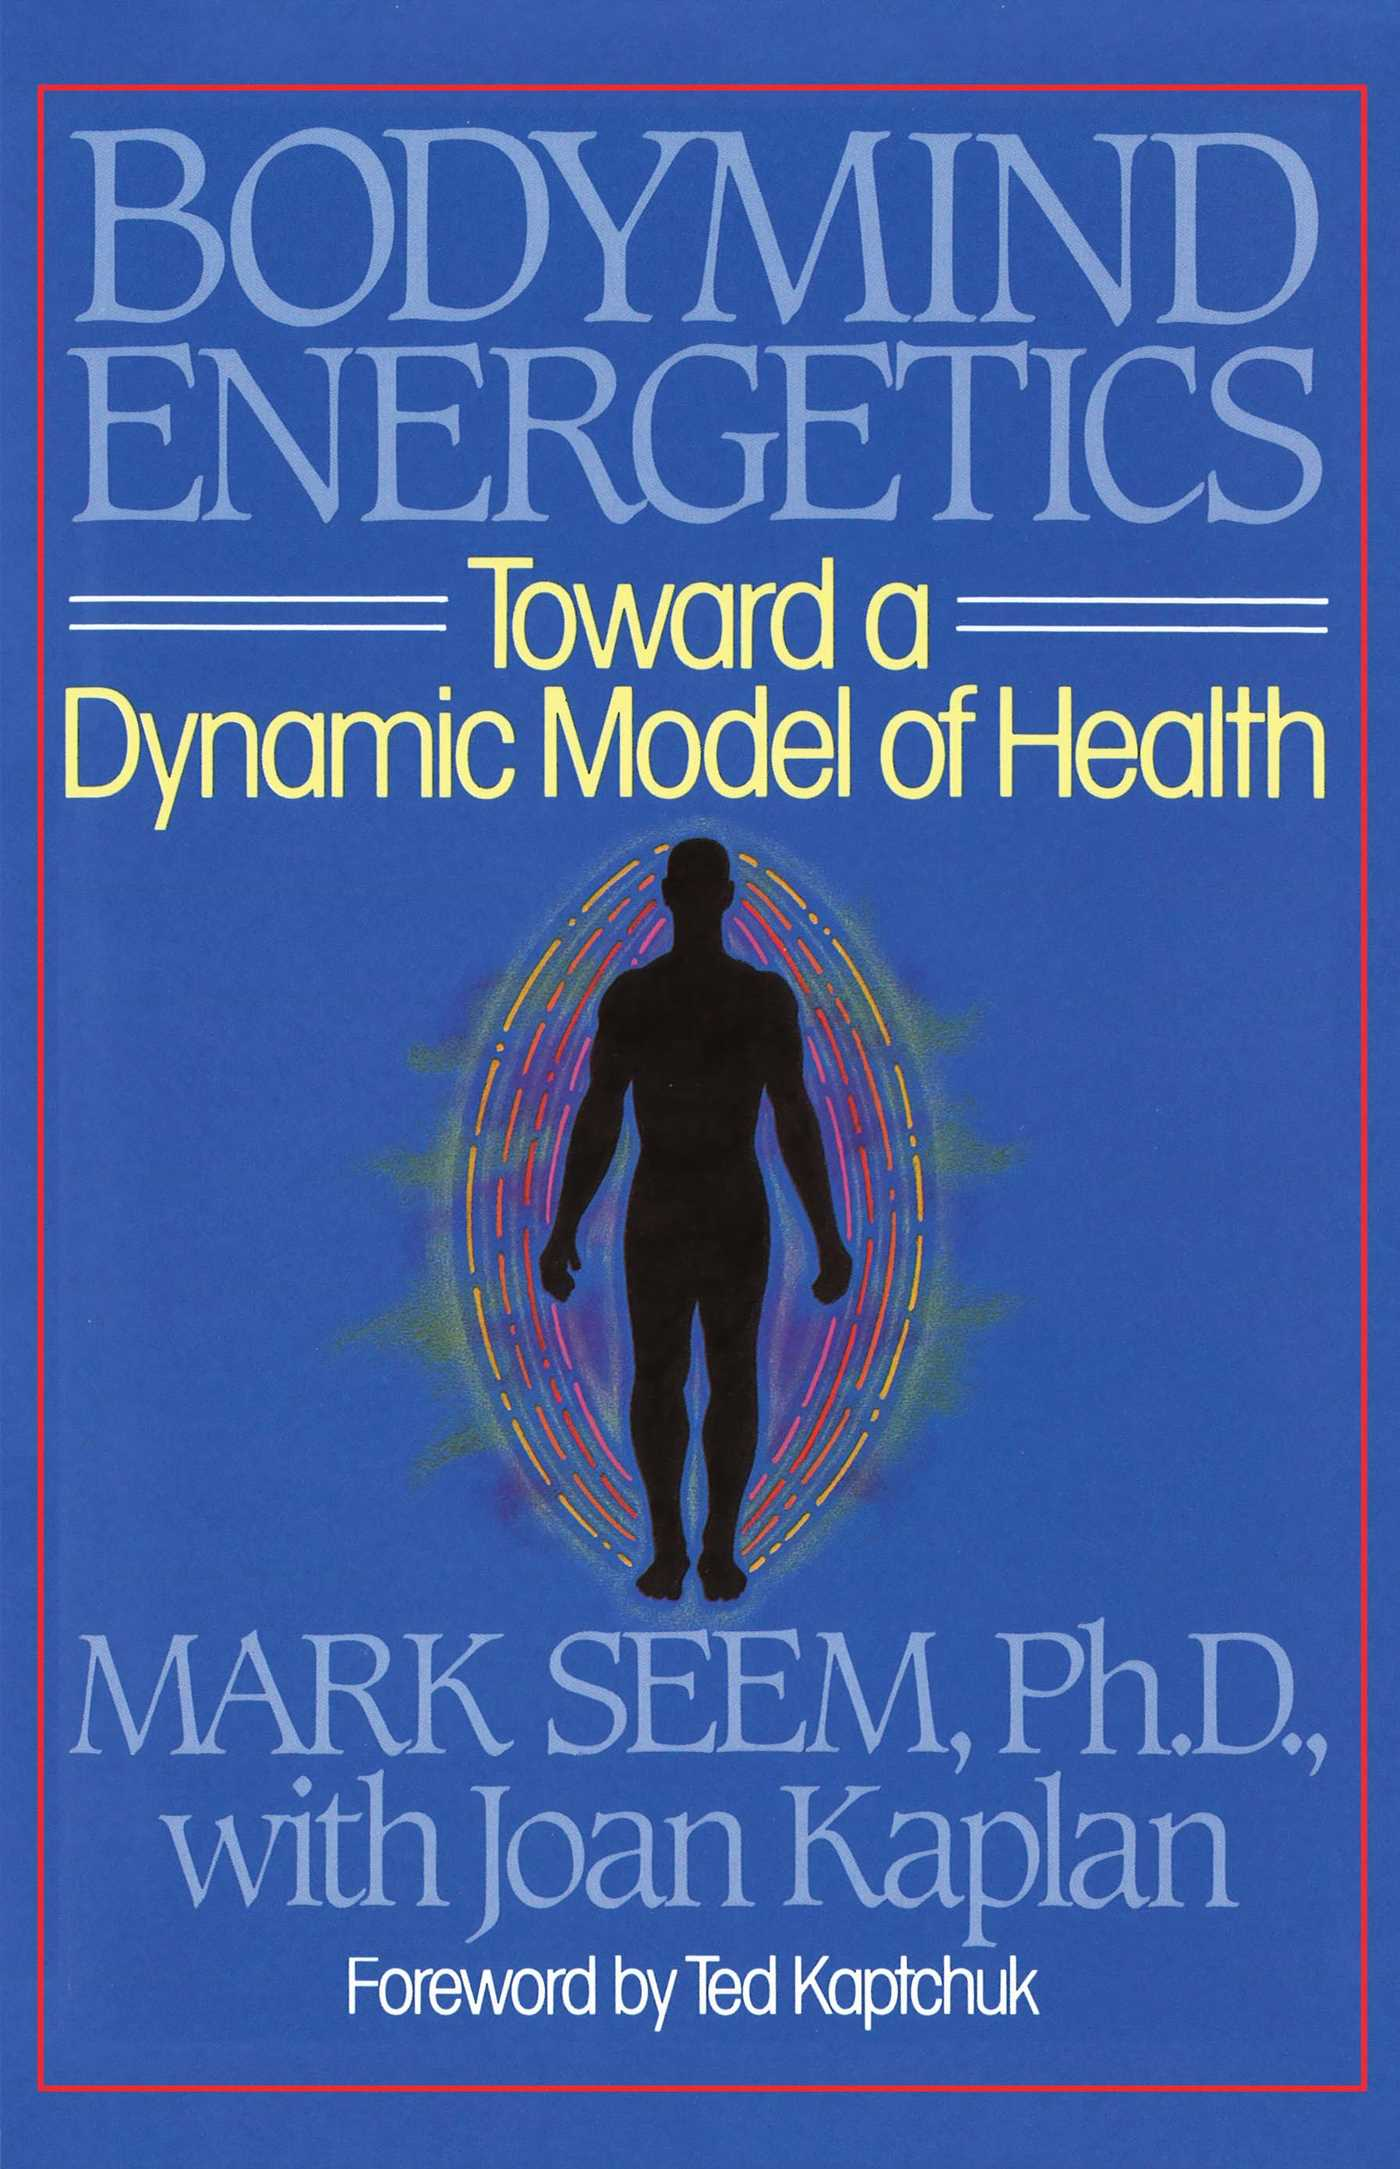 Bodymind energetics 9780892812462 hr